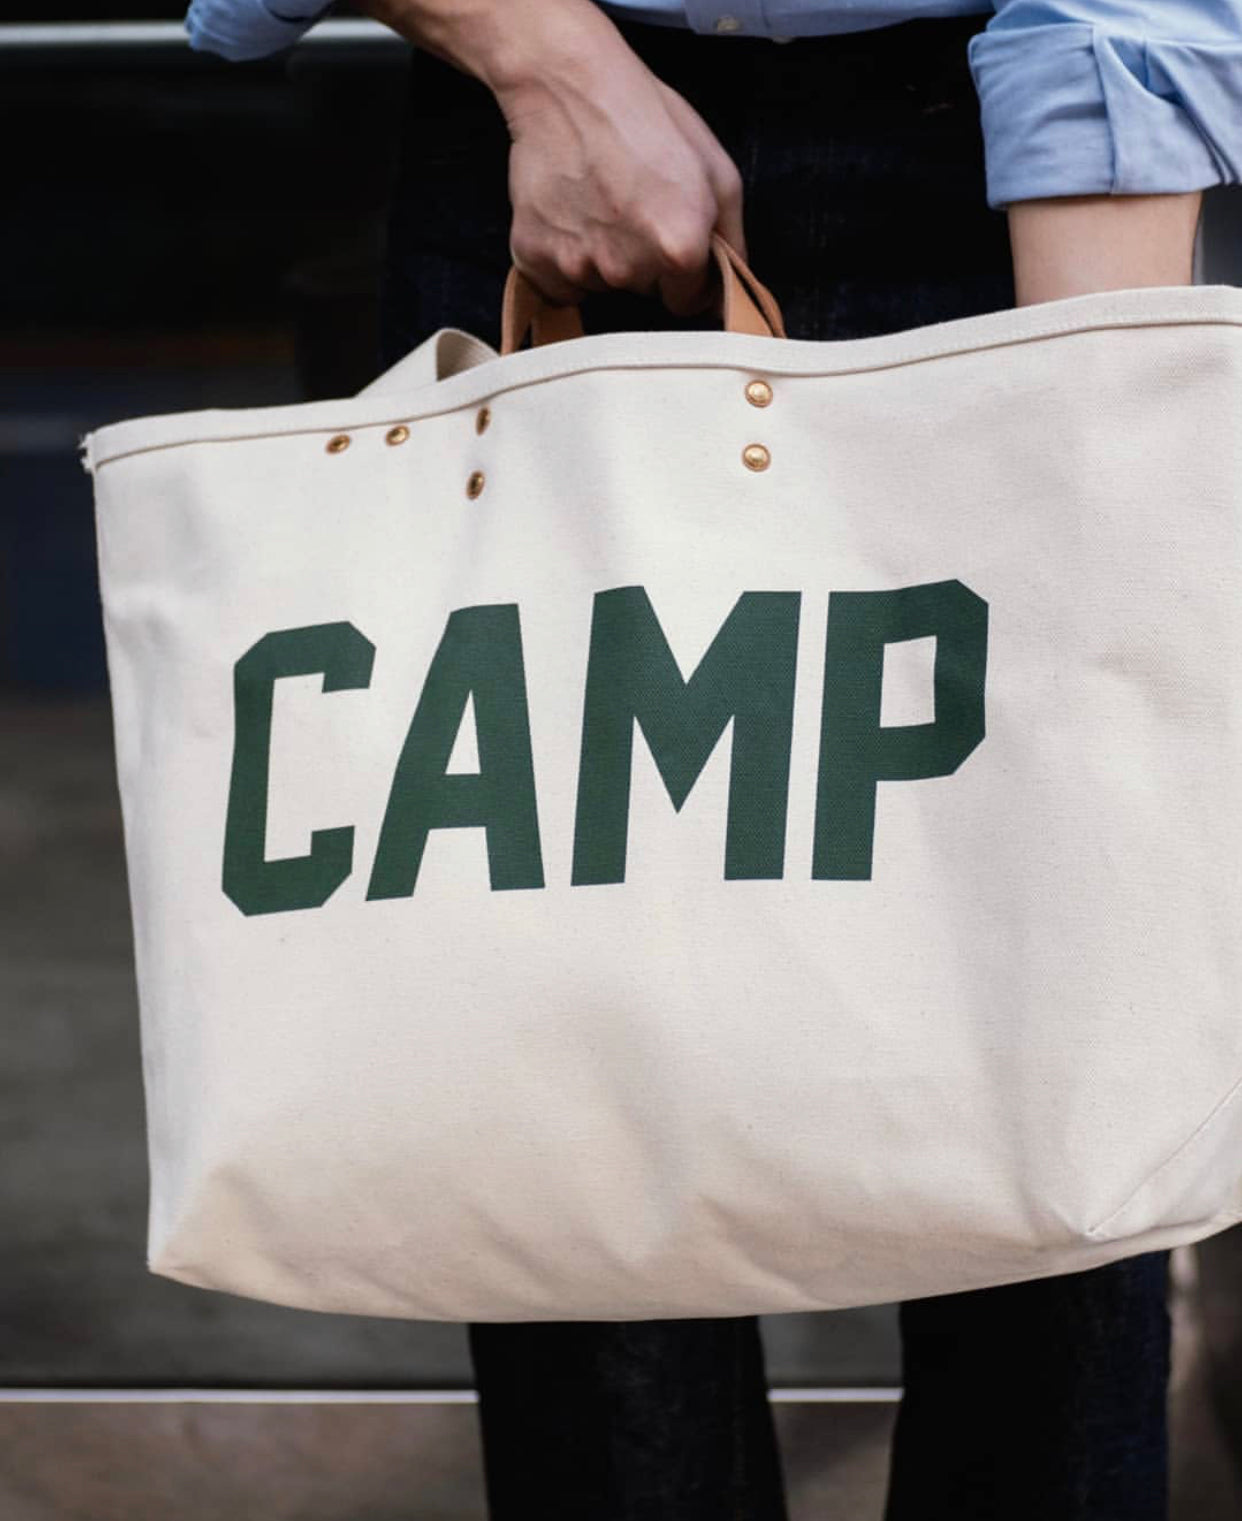 Camping Tote Bag | CUB005, The Superior Labor - The Signet Store